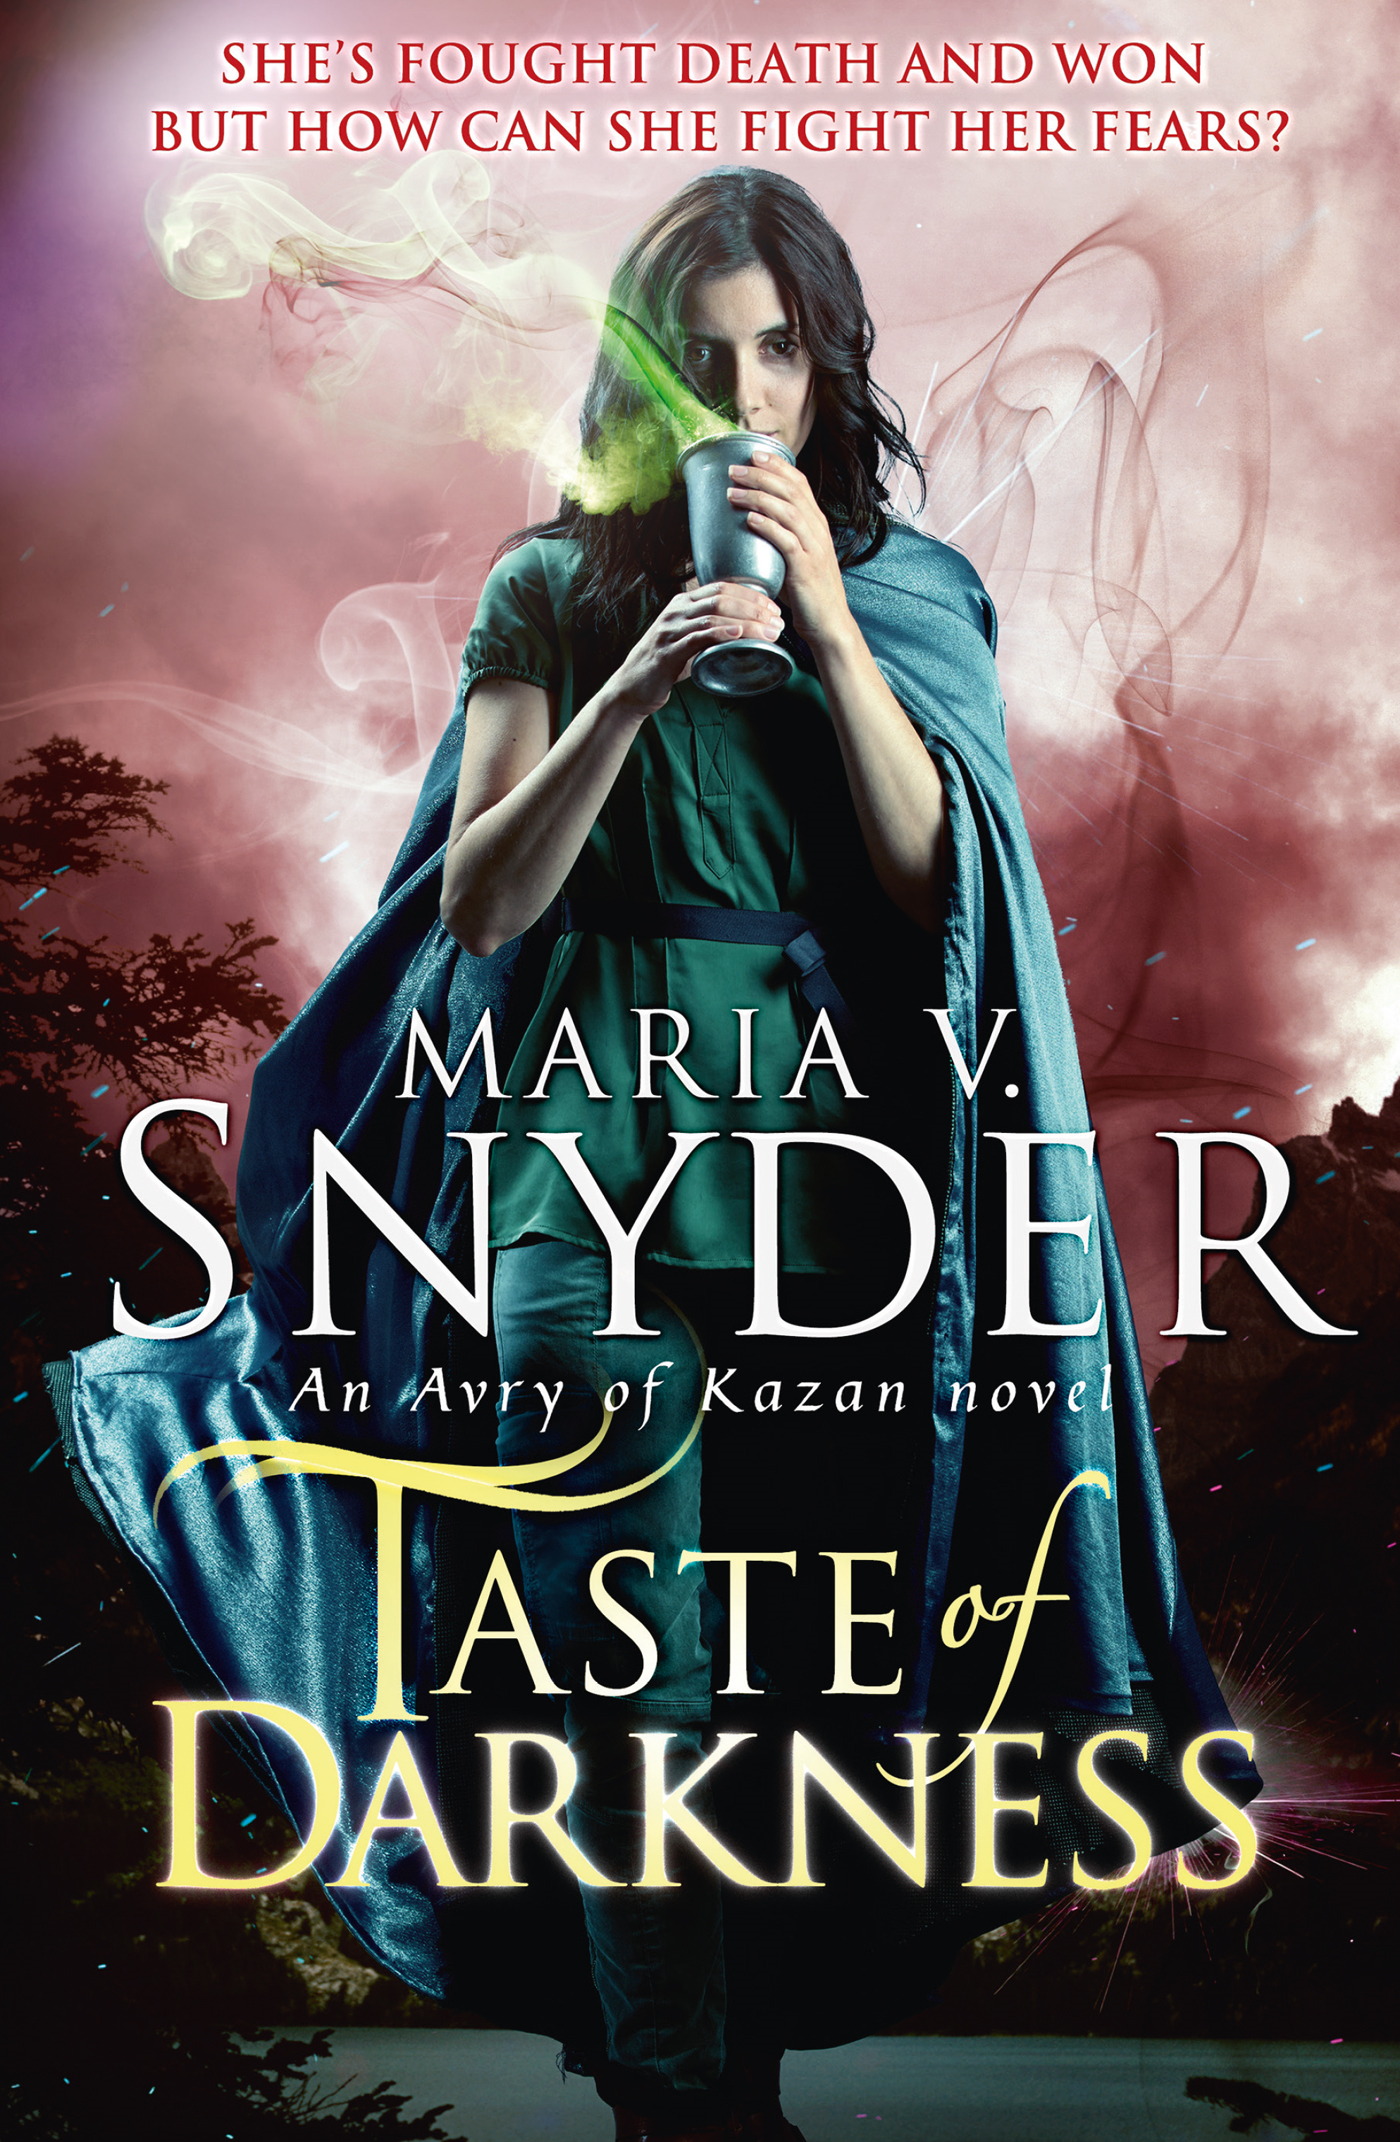 Taste of Darkness (An Avry of Kazan Novel - Book 3)